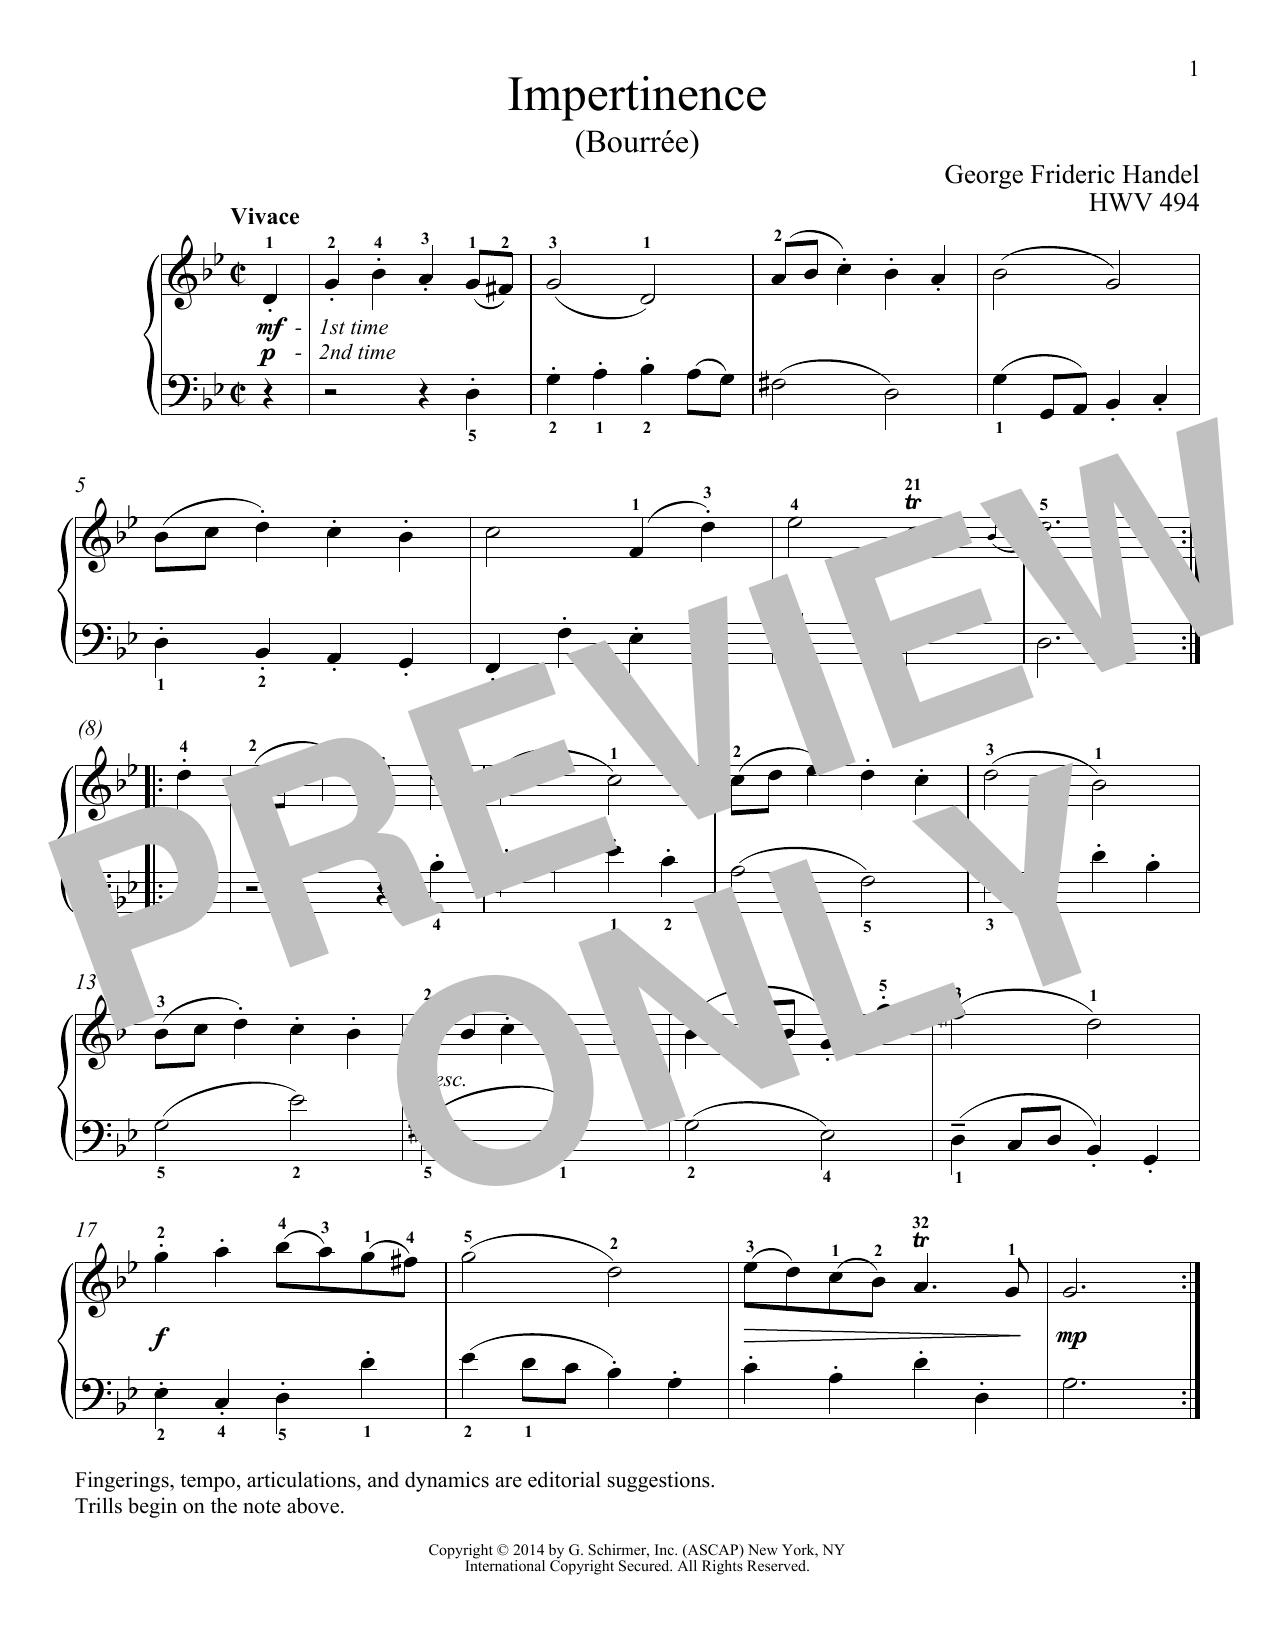 Download George Frideric Handel 'Impertinence, HWV 494' Digital Sheet Music Notes & Chords and start playing in minutes